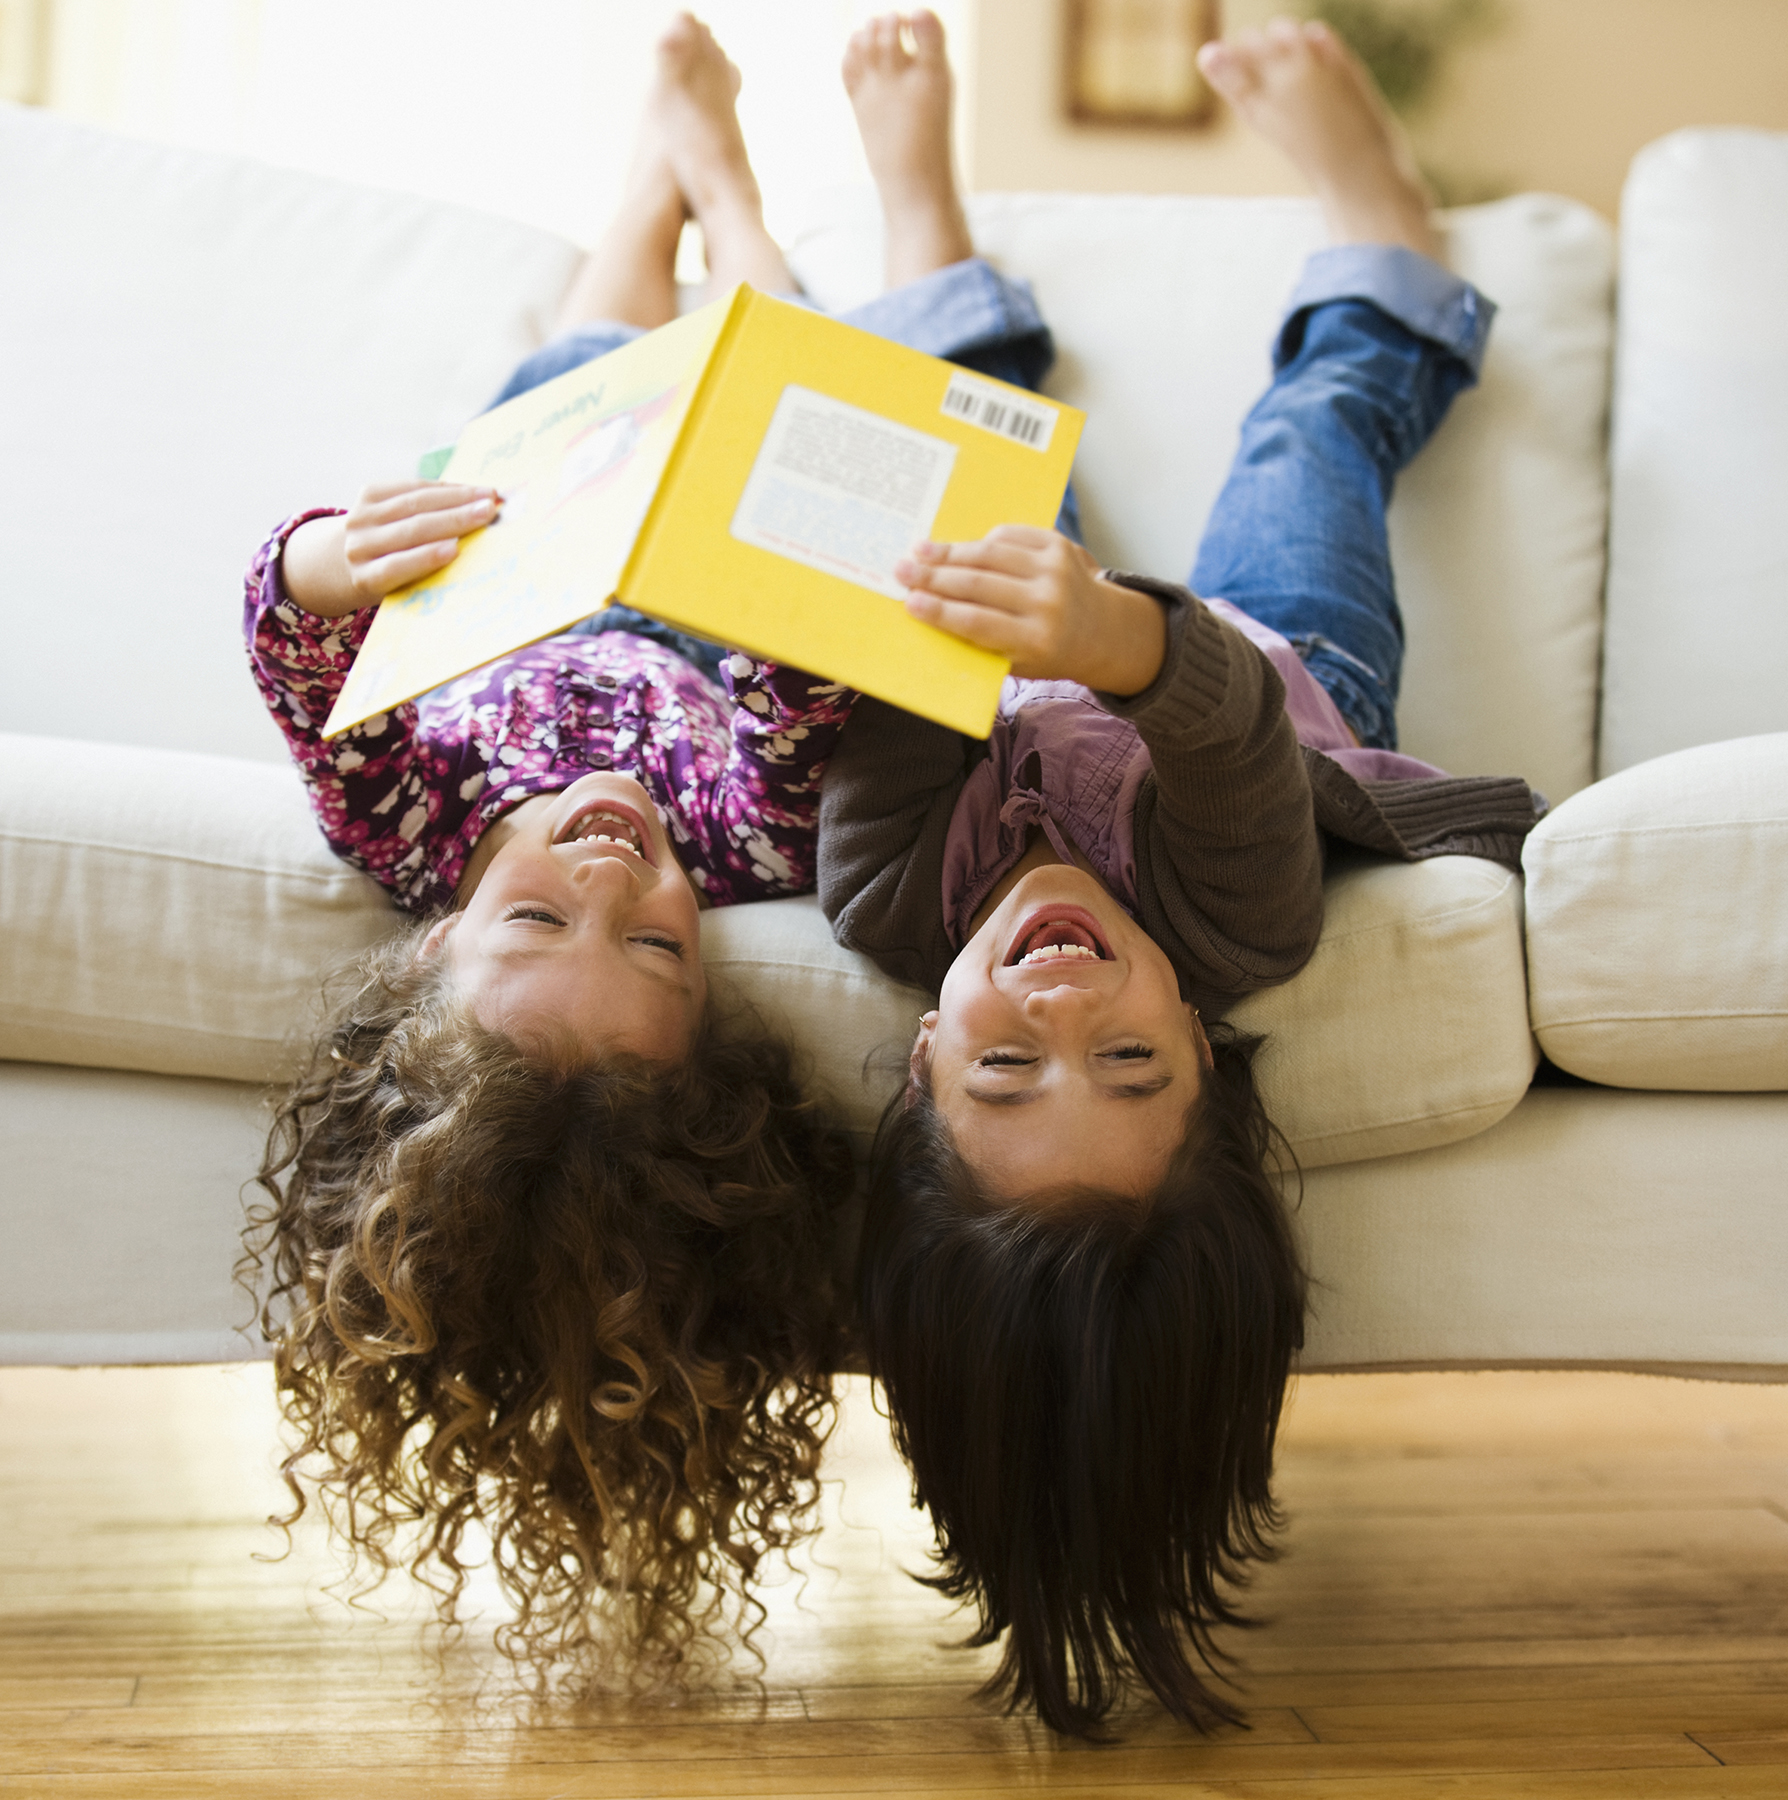 Girls upside down on sofa with book